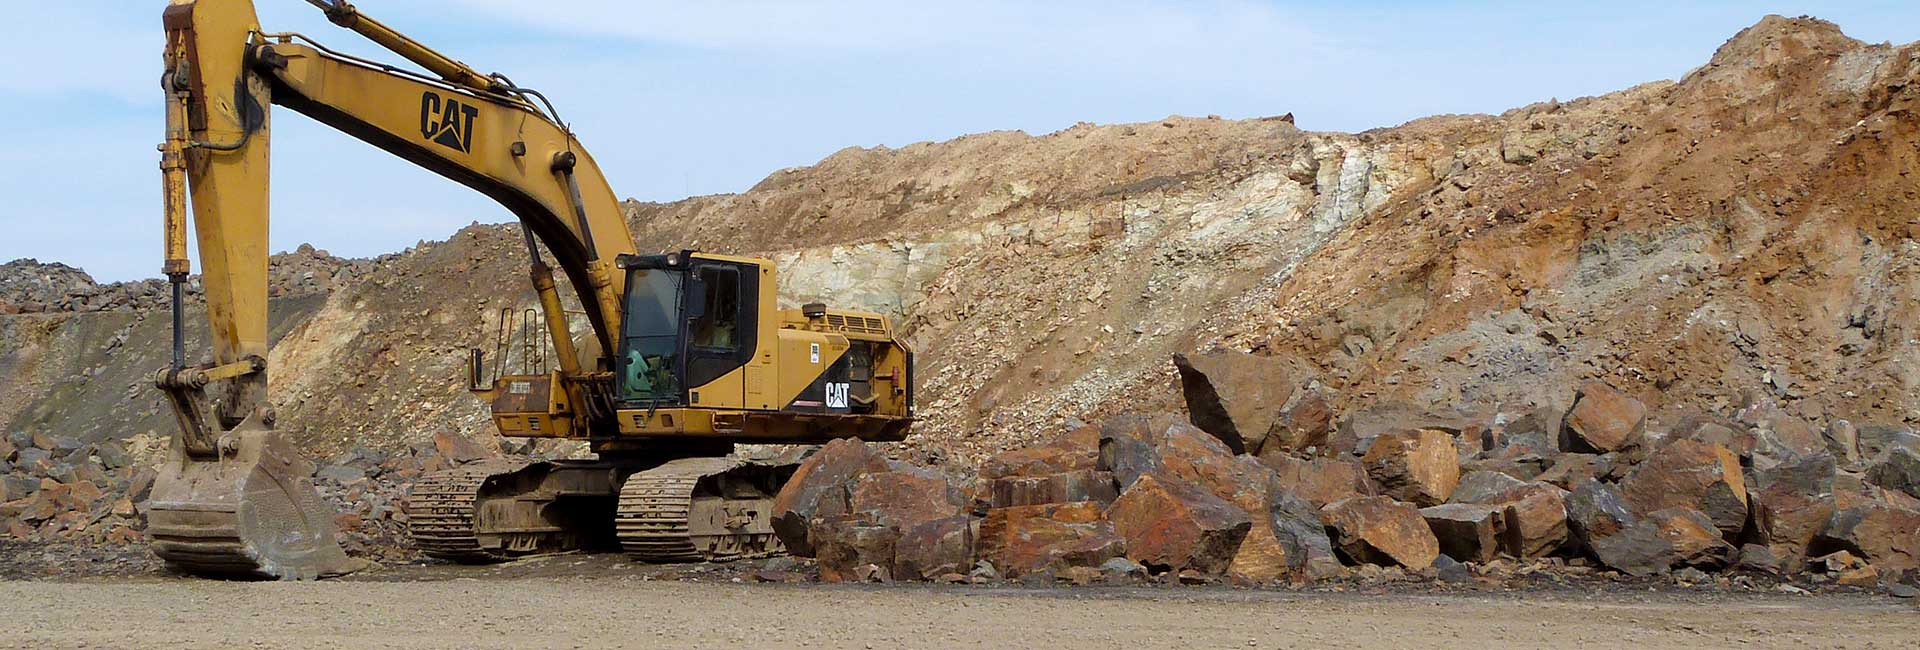 Ecavation, snow removal in Maine, Mooring Stones, Road Construction, Raw Materials